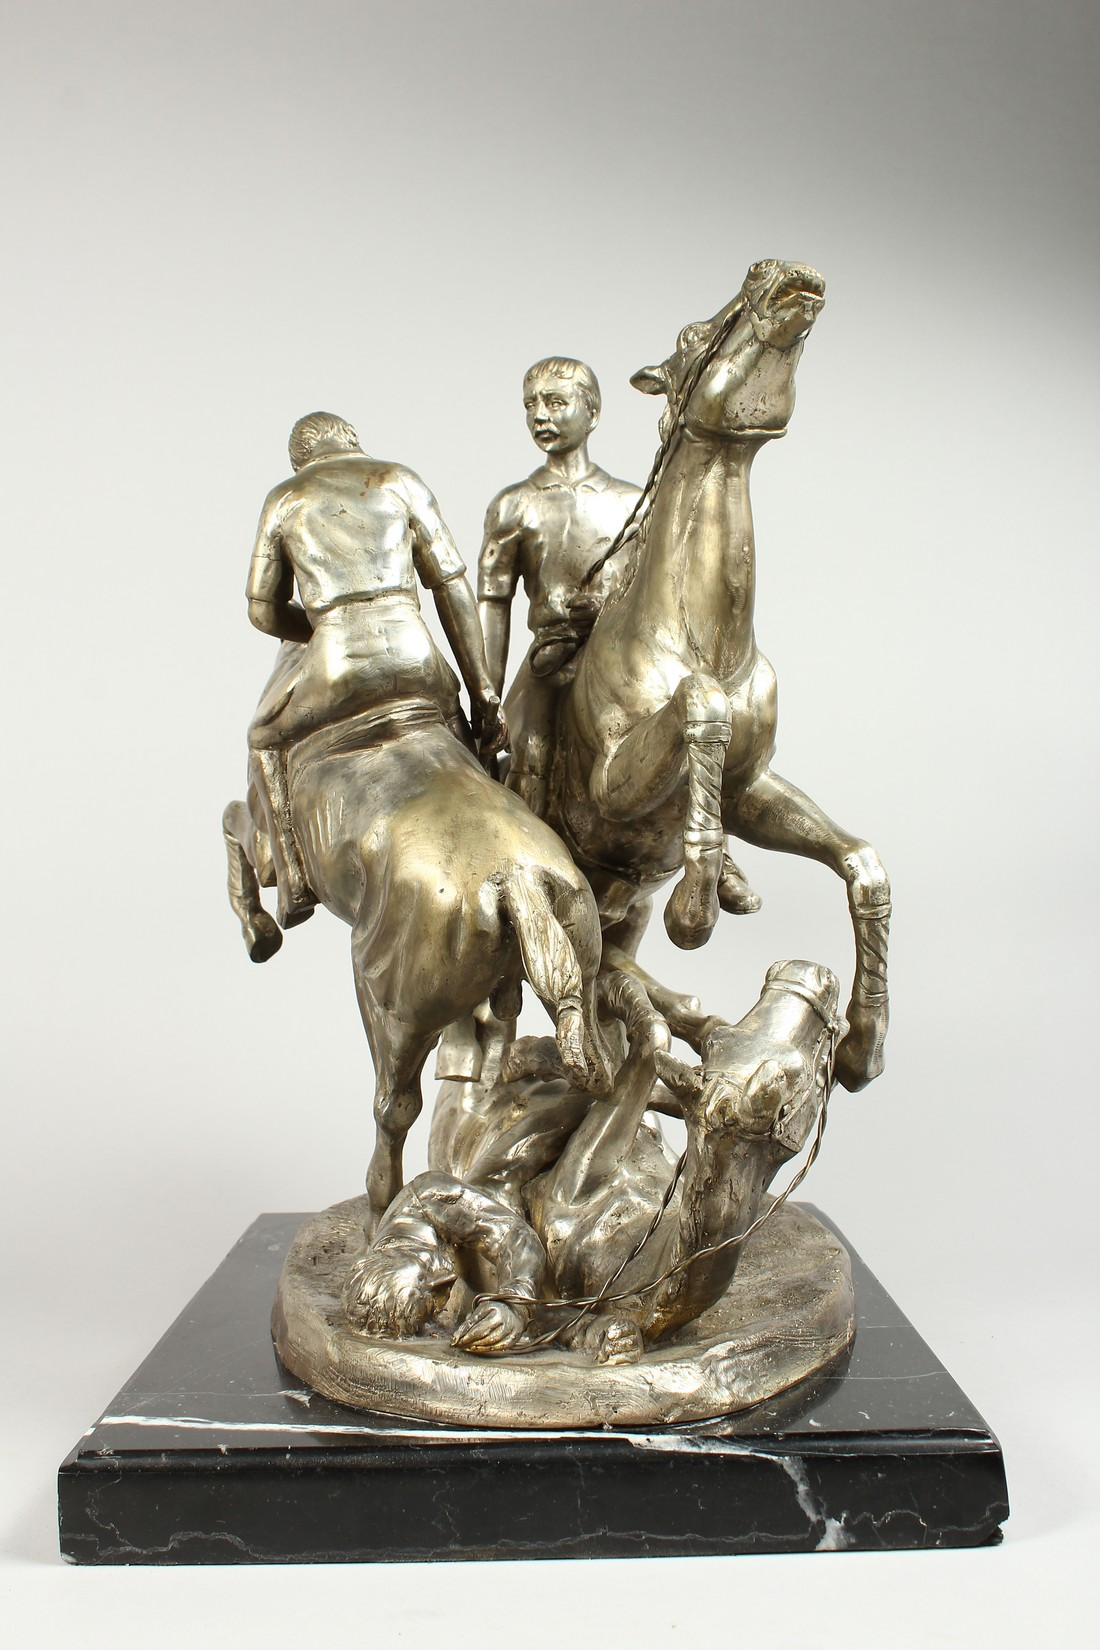 AFTER F. REMMINGTON A SILVER BRONZE GROUP OF TWO RIDERS ON HORSEBACK, a horn and rider on the floor. - Image 14 of 16